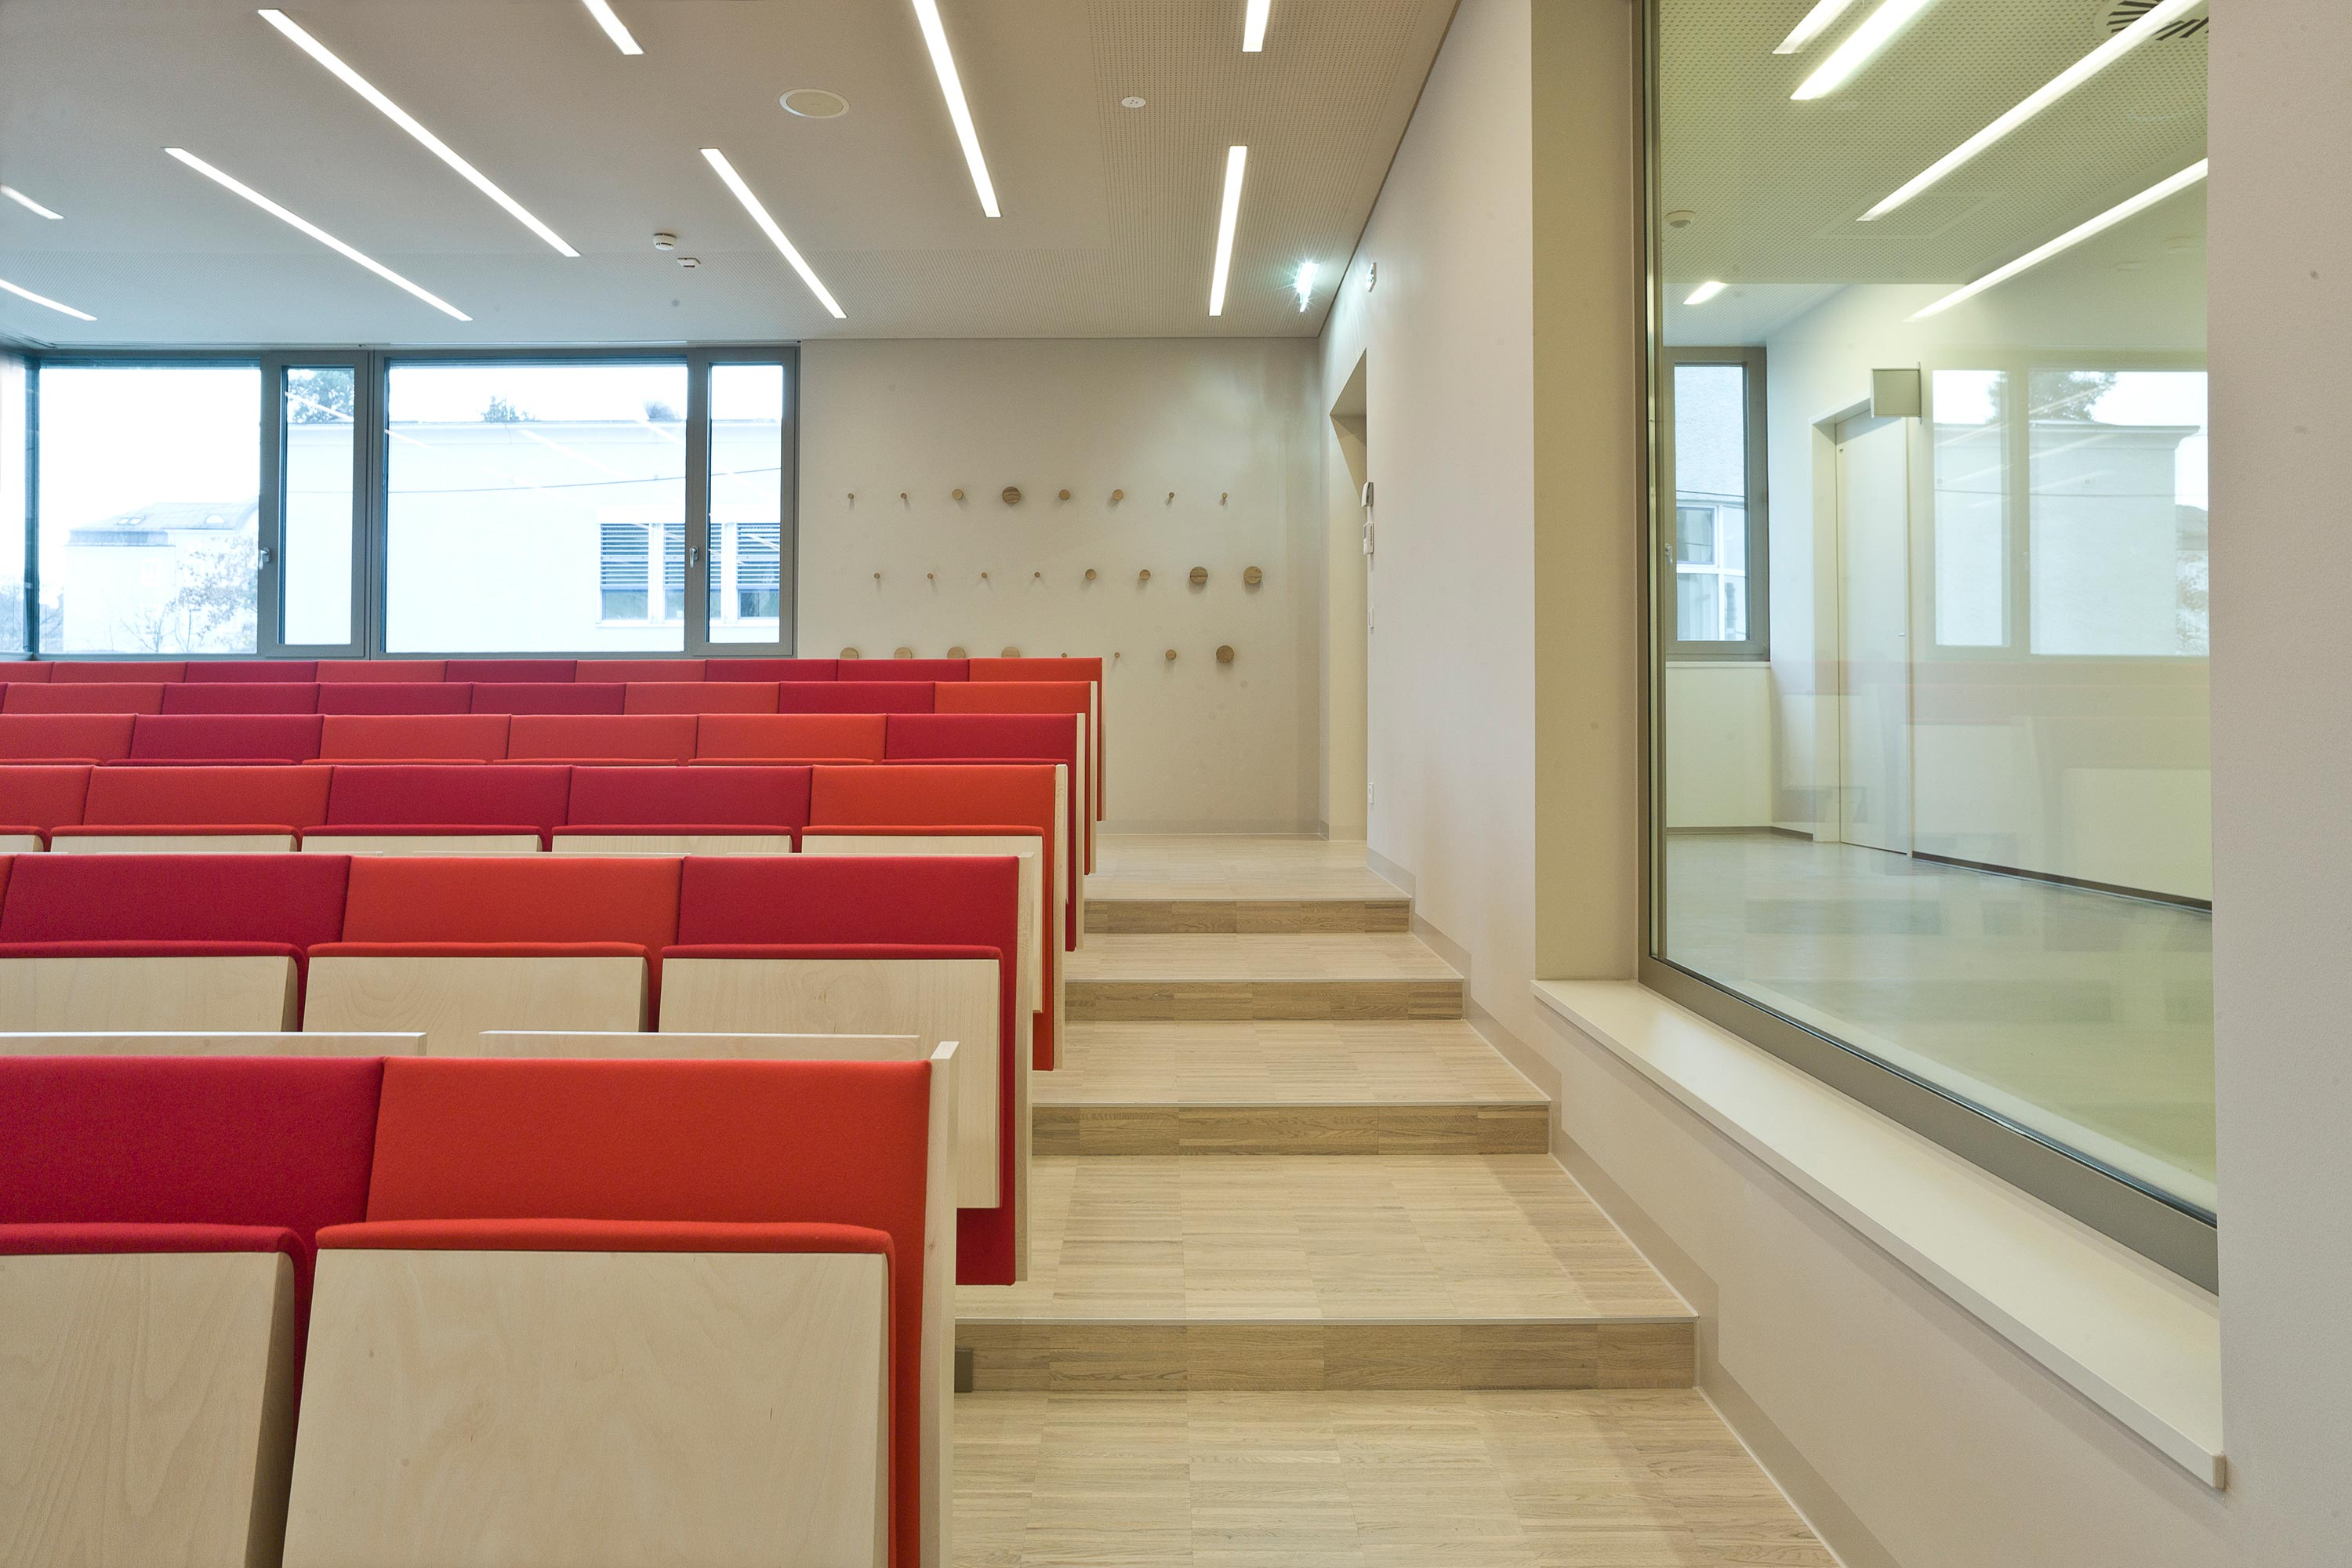 Institute building of Pharmacy, lecture room. Photo: Hertha Hurnaus | Berger+Parkkinen Architekten